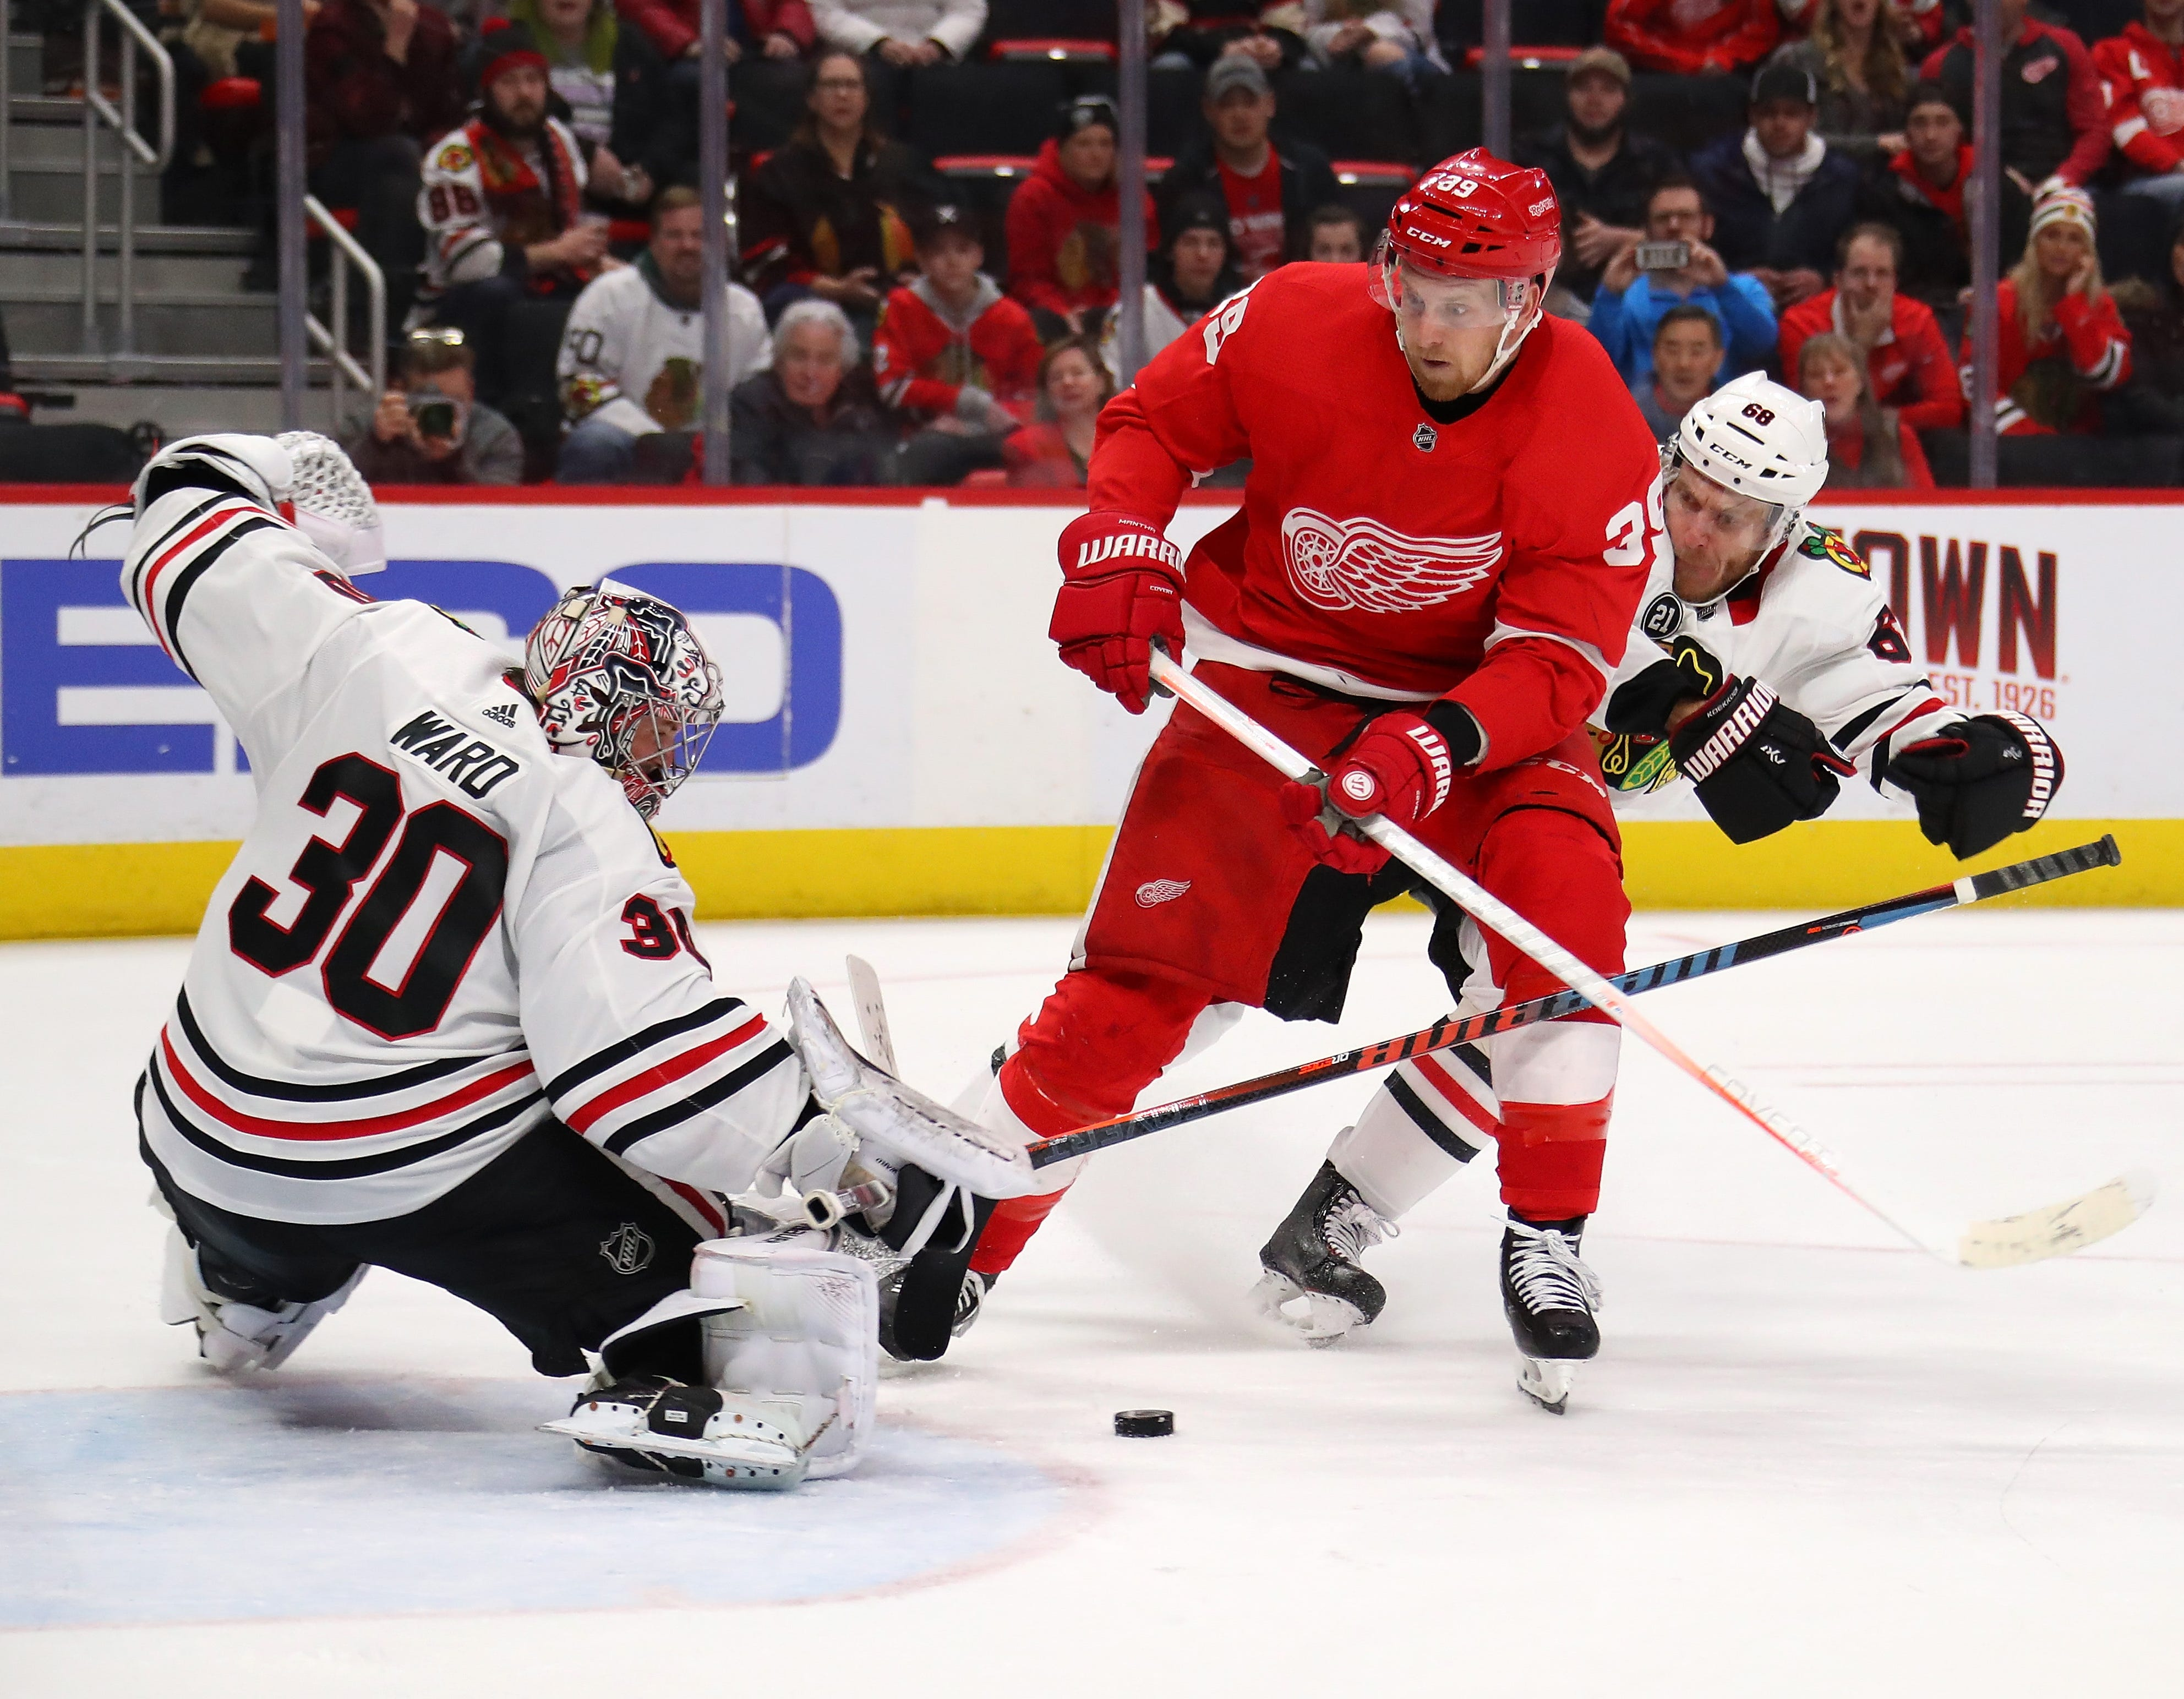 Red Wings forward Anthony Mantha tries to get a shot off between Blackhawks goalie Cam Ward and defenseman Slater Koekkoek during overtime of the Wings' 5-4 loss on Wednesday, Feb. 20, 2019, at Little Caesars Arena.